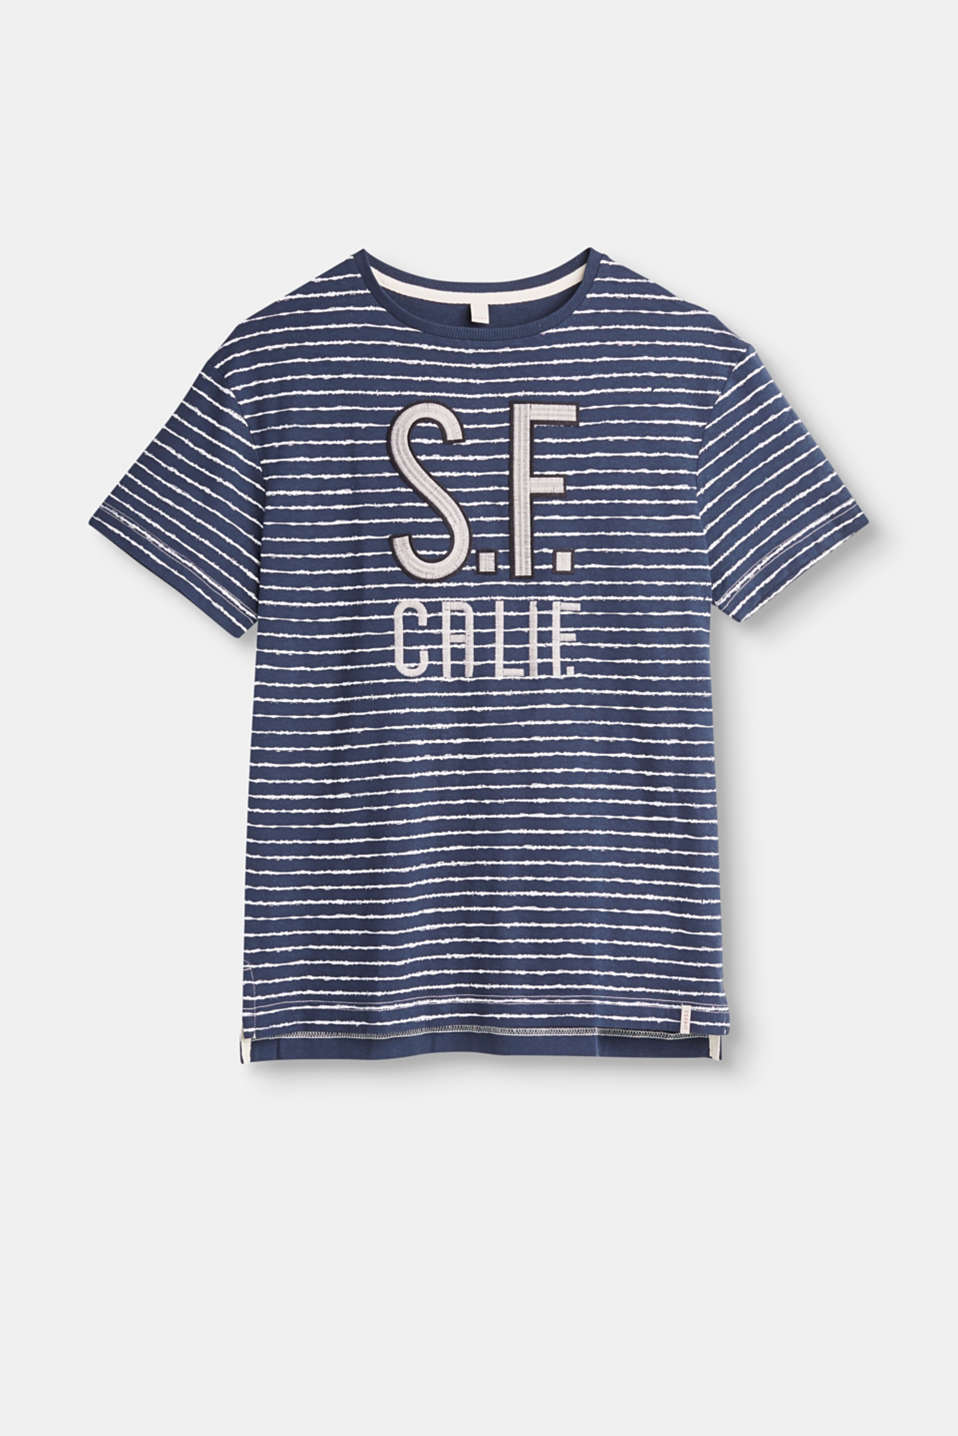 Esprit - Striped jersey top in cotton